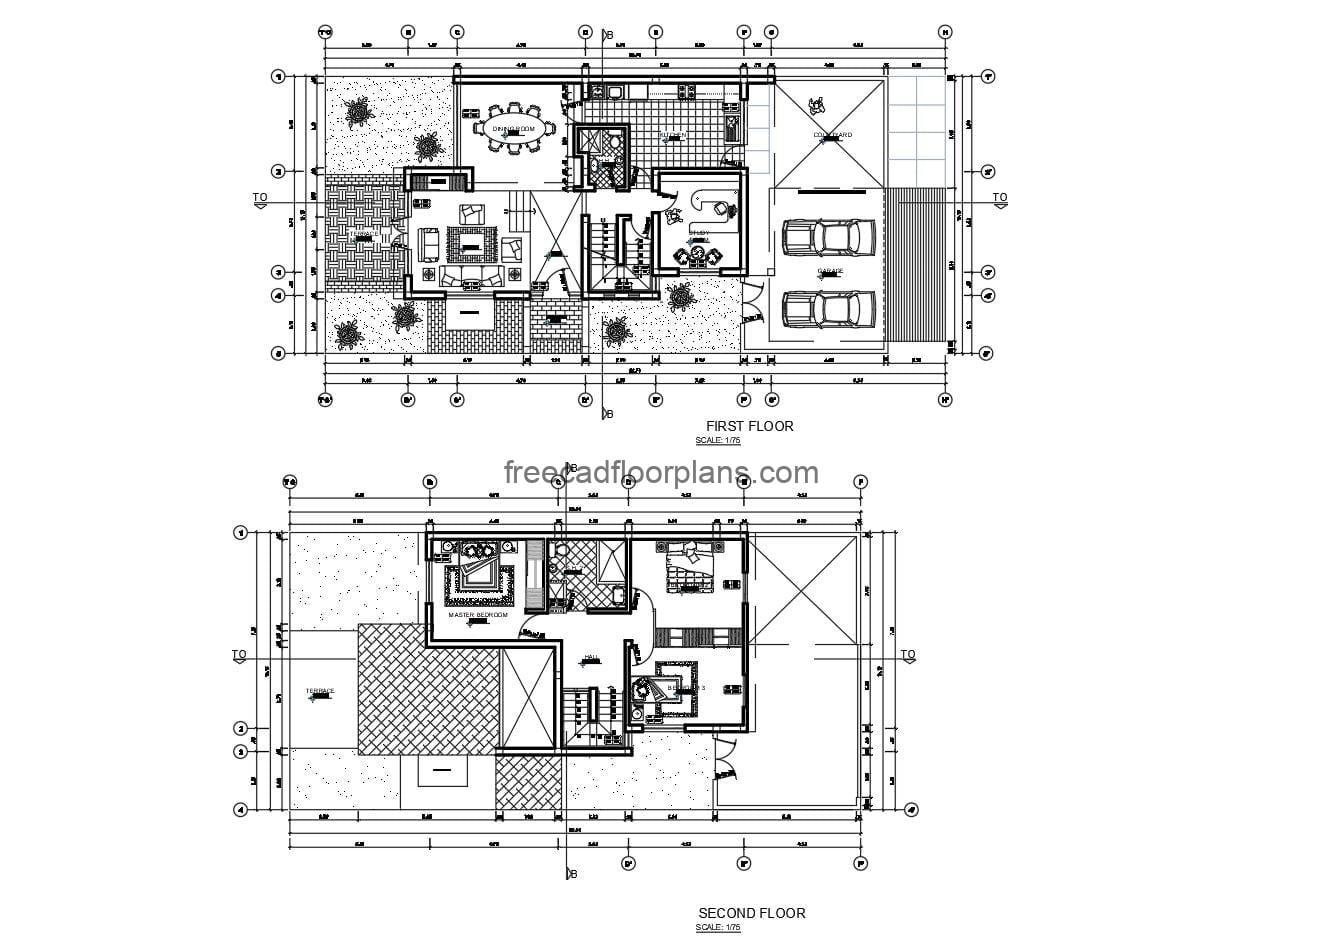 Complete autocad floorplans of a two-storey residence with basement for free download